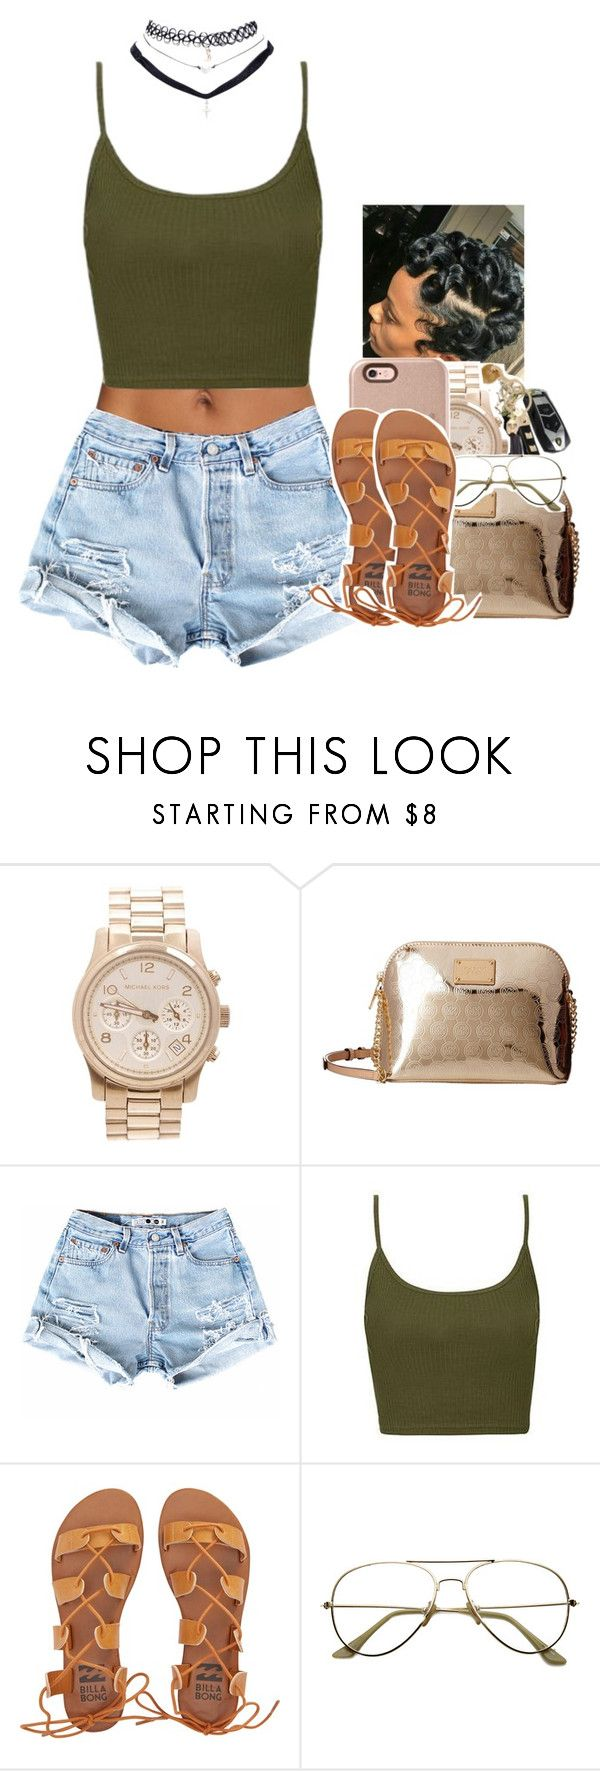 """Untitled #1989"" by toniiiiiiiiiiiiiii ❤ liked on Polyvore featuring Michael Kors, Topshop, Billabong and Wet Seal"